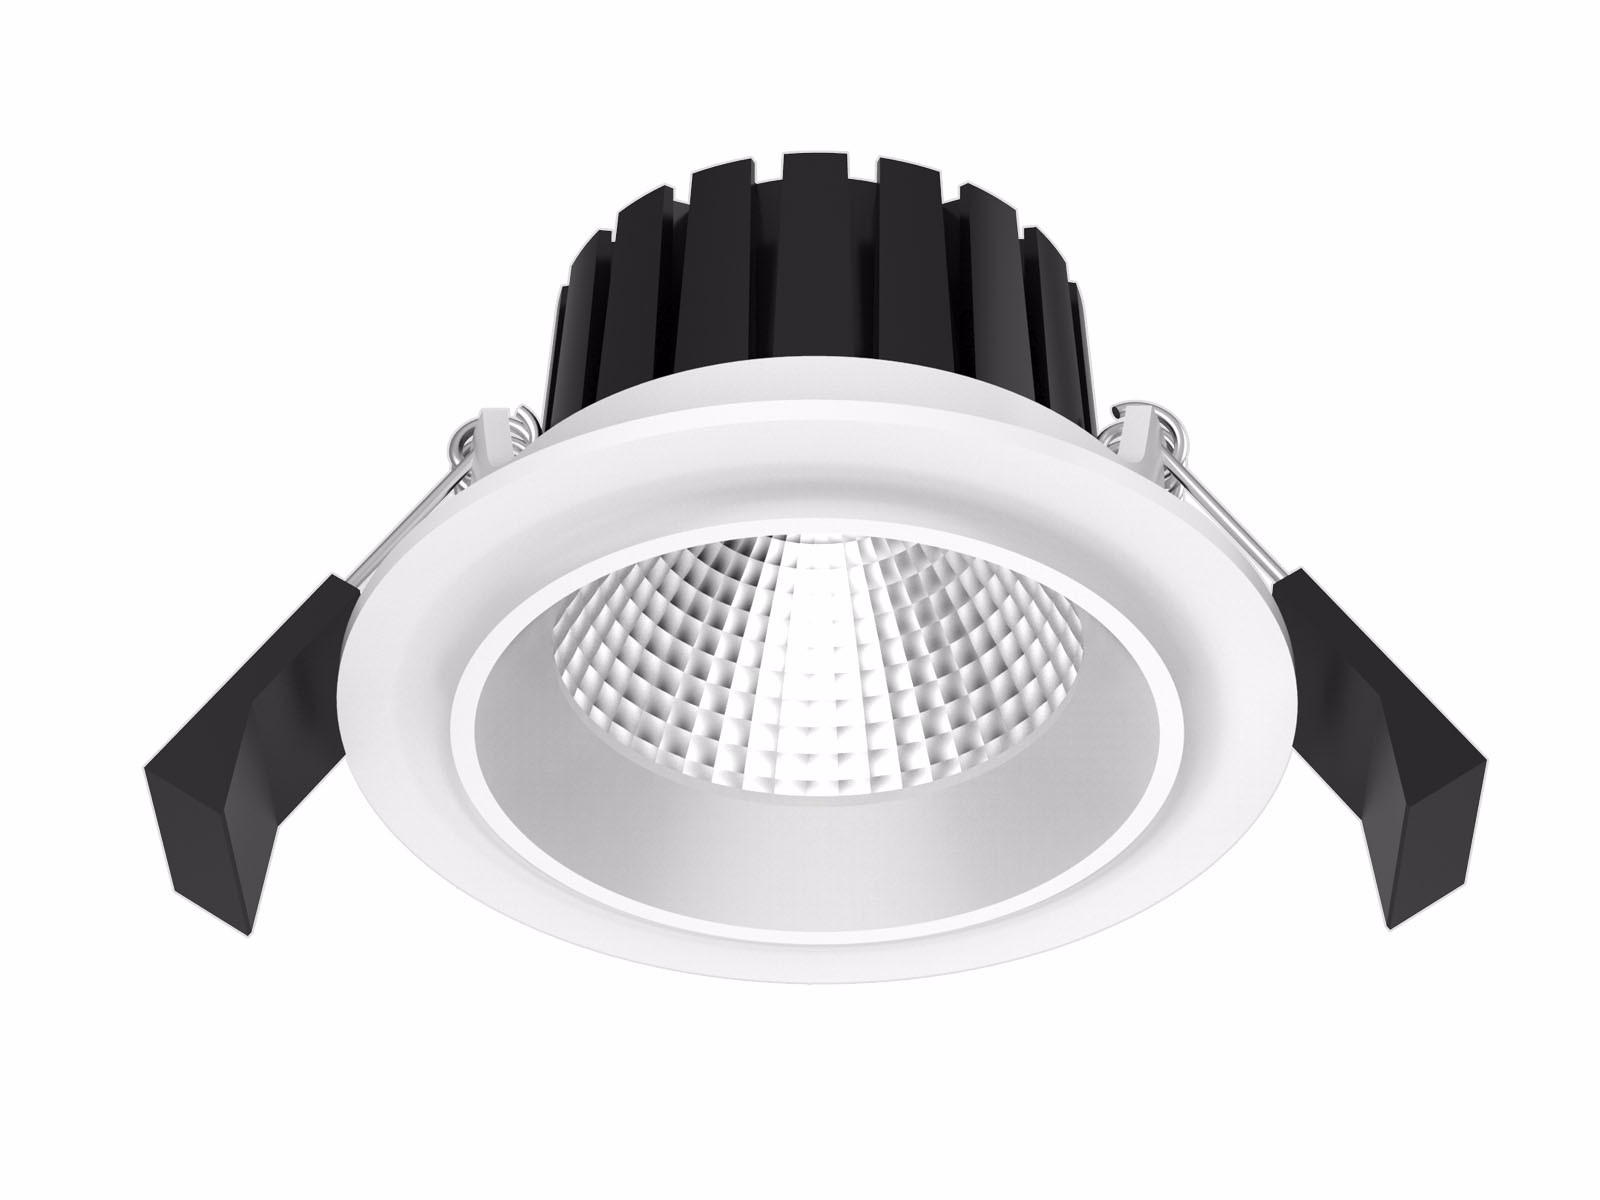 DL63 LED Downlight